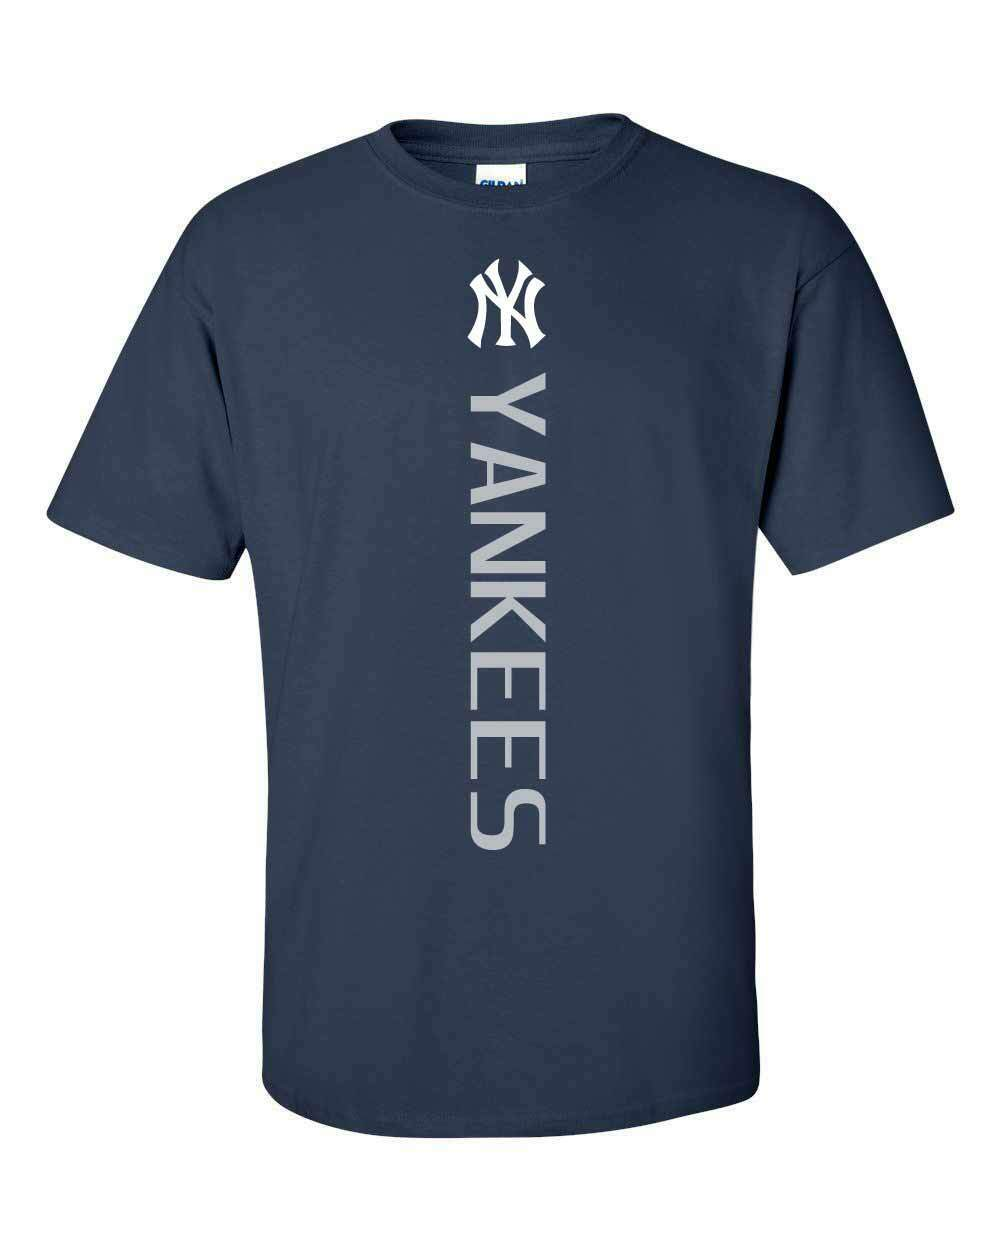 New York NY Yankees MLB Vertical T-Shirt - S-5XL FREE SHIPPI